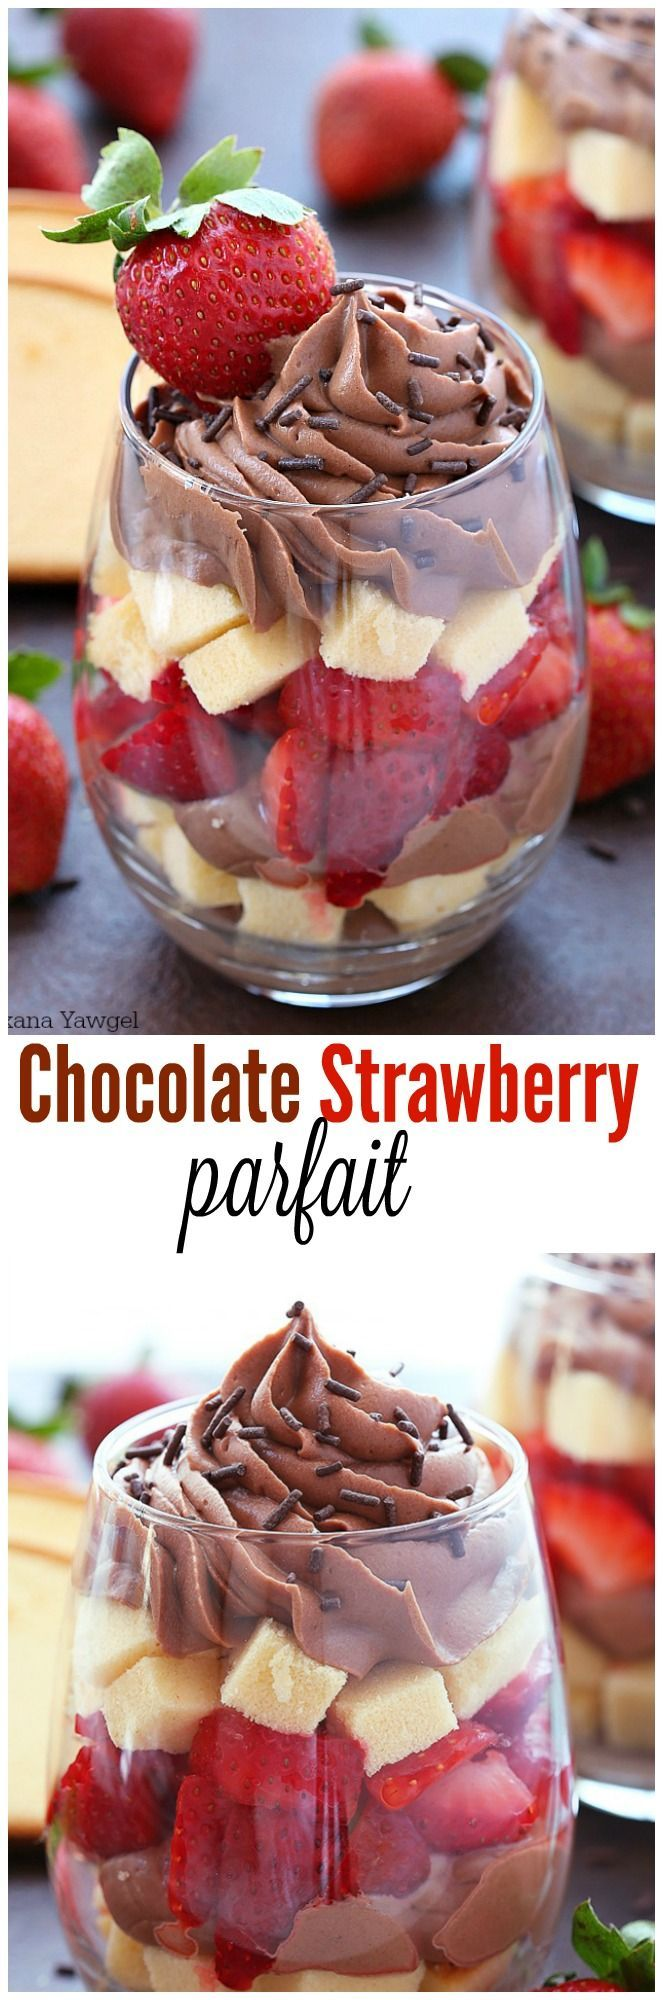 Layers upon layers of buttery cake, rich chocolate filling and ripe strawberries make this chocolate parfait an irresistible treat! Perfect for last minute guests or as a quick after dinner dessert!